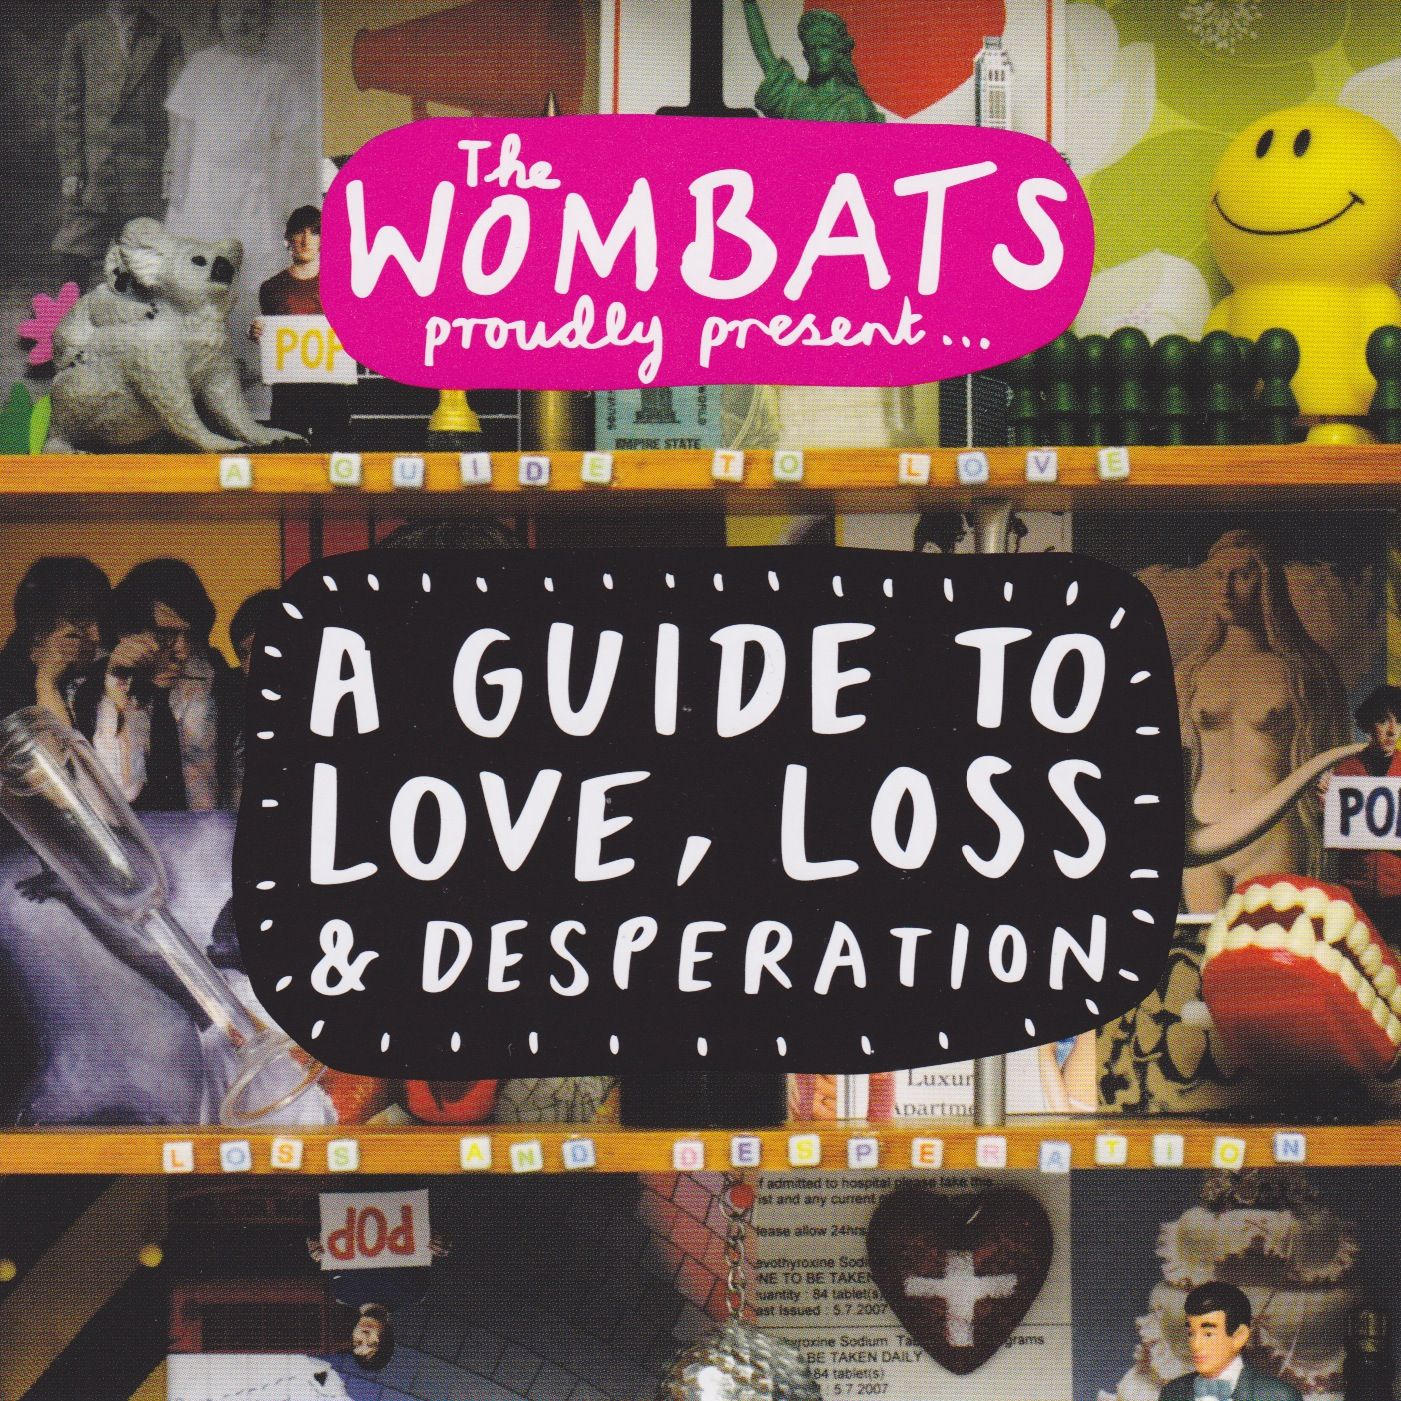 The Wombats - A Guide To Love Loss & Desperation album cover